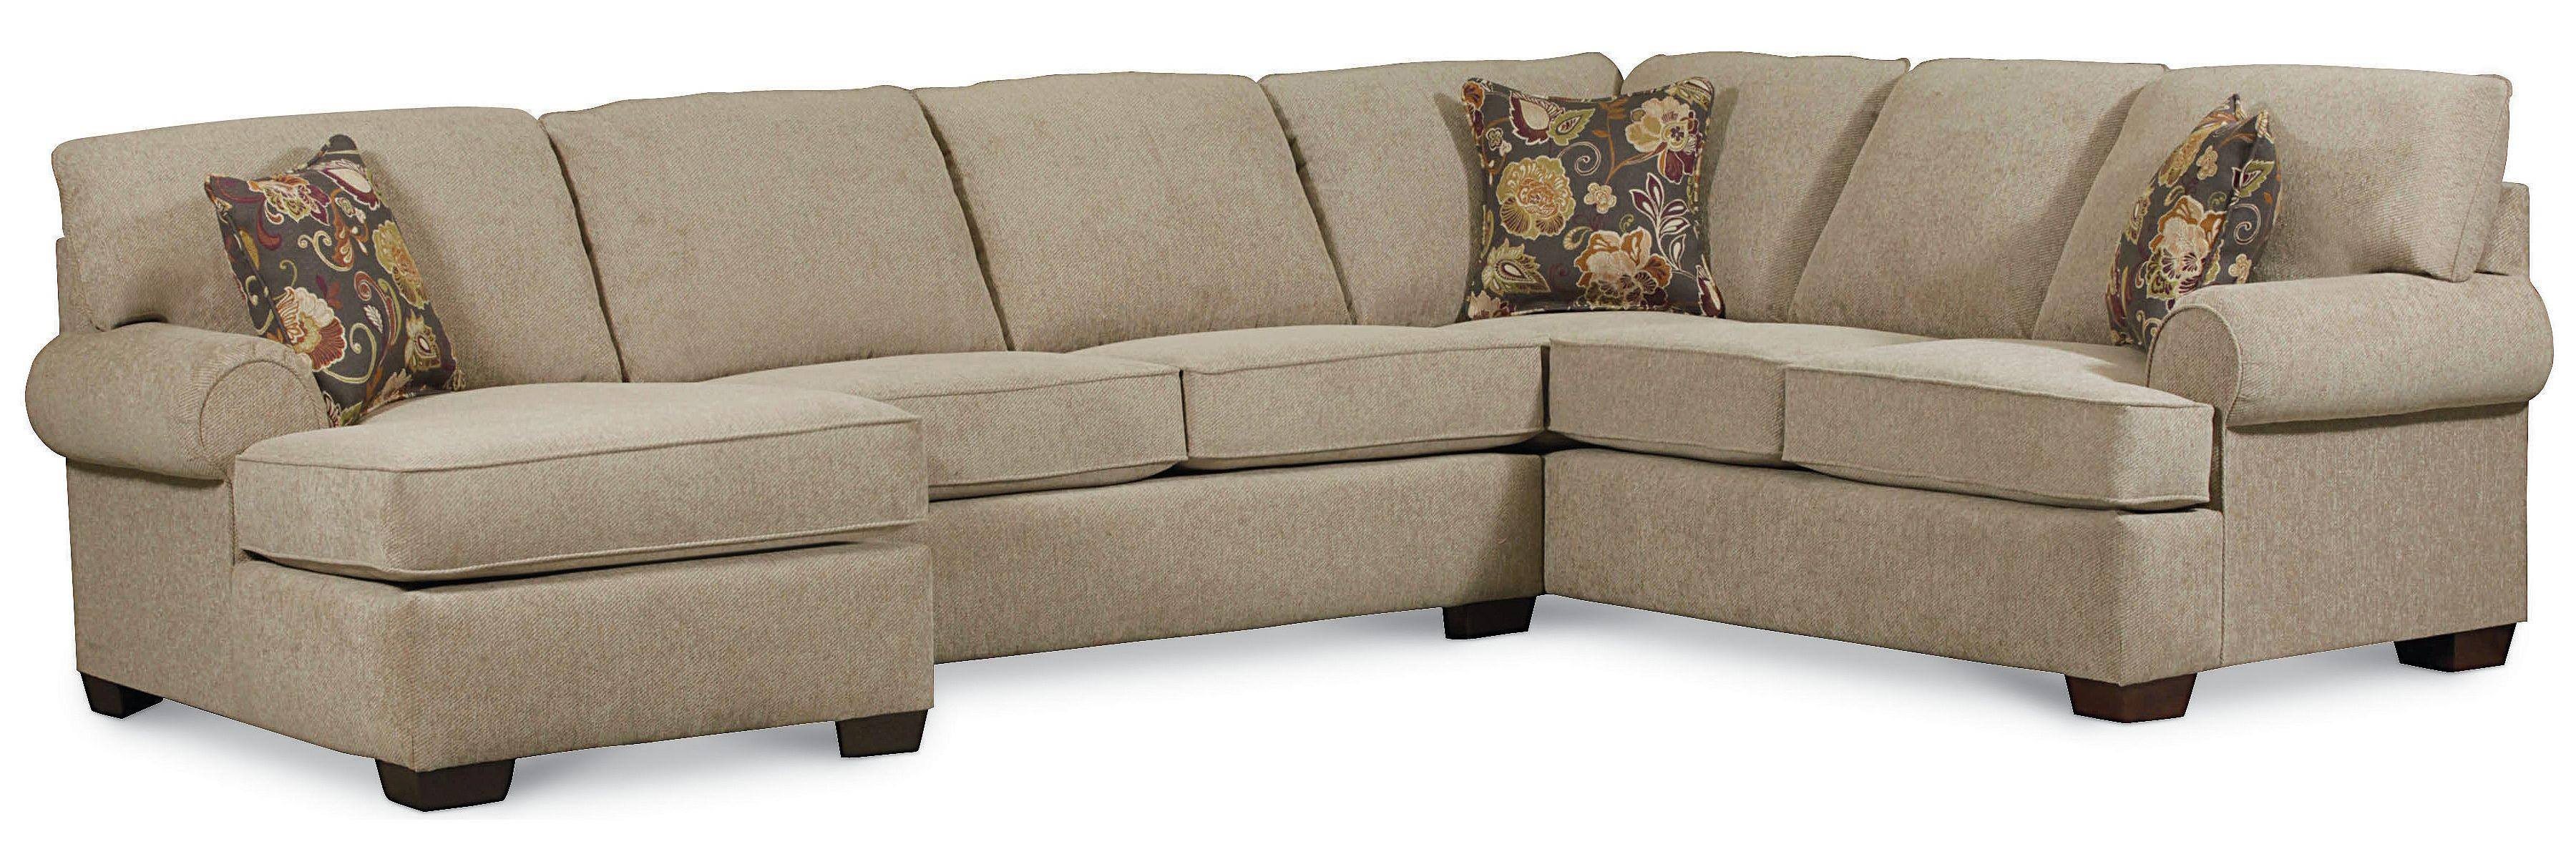 Lane Vivian Transitional 3 Piece Sectional Sofa AHFA Sofa